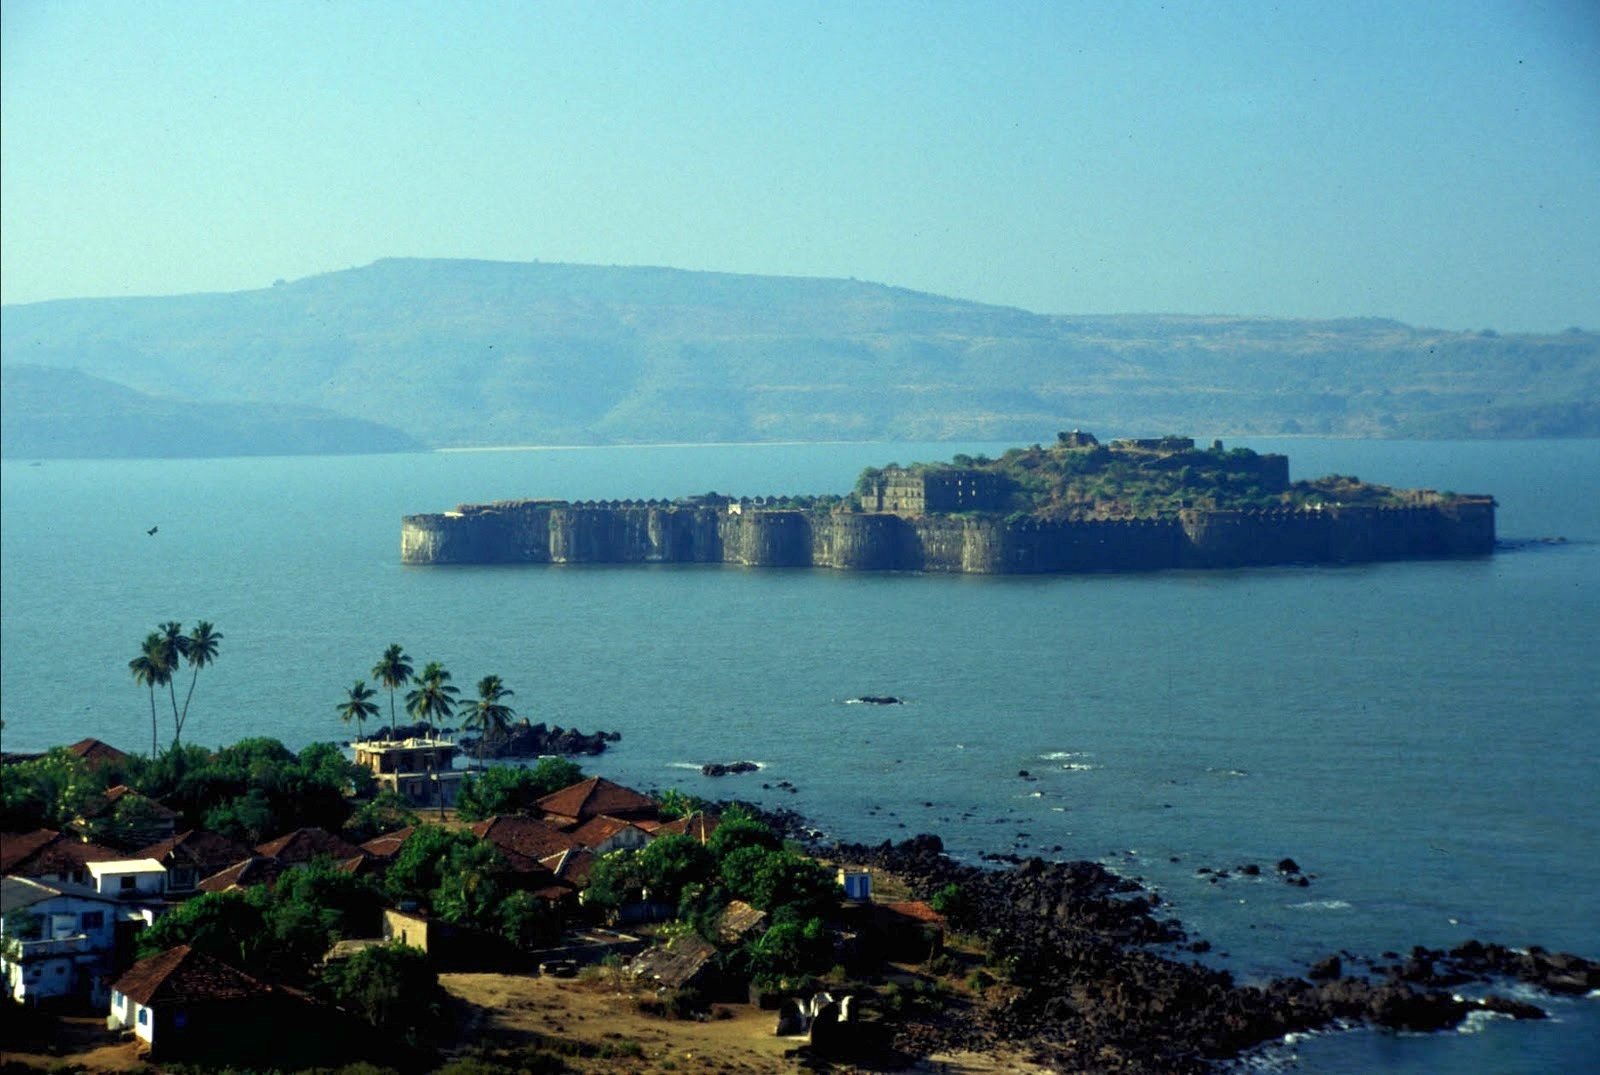 Alibaug Tourist Guide - Most Unrated Yet Intoxicating Holiday Destination